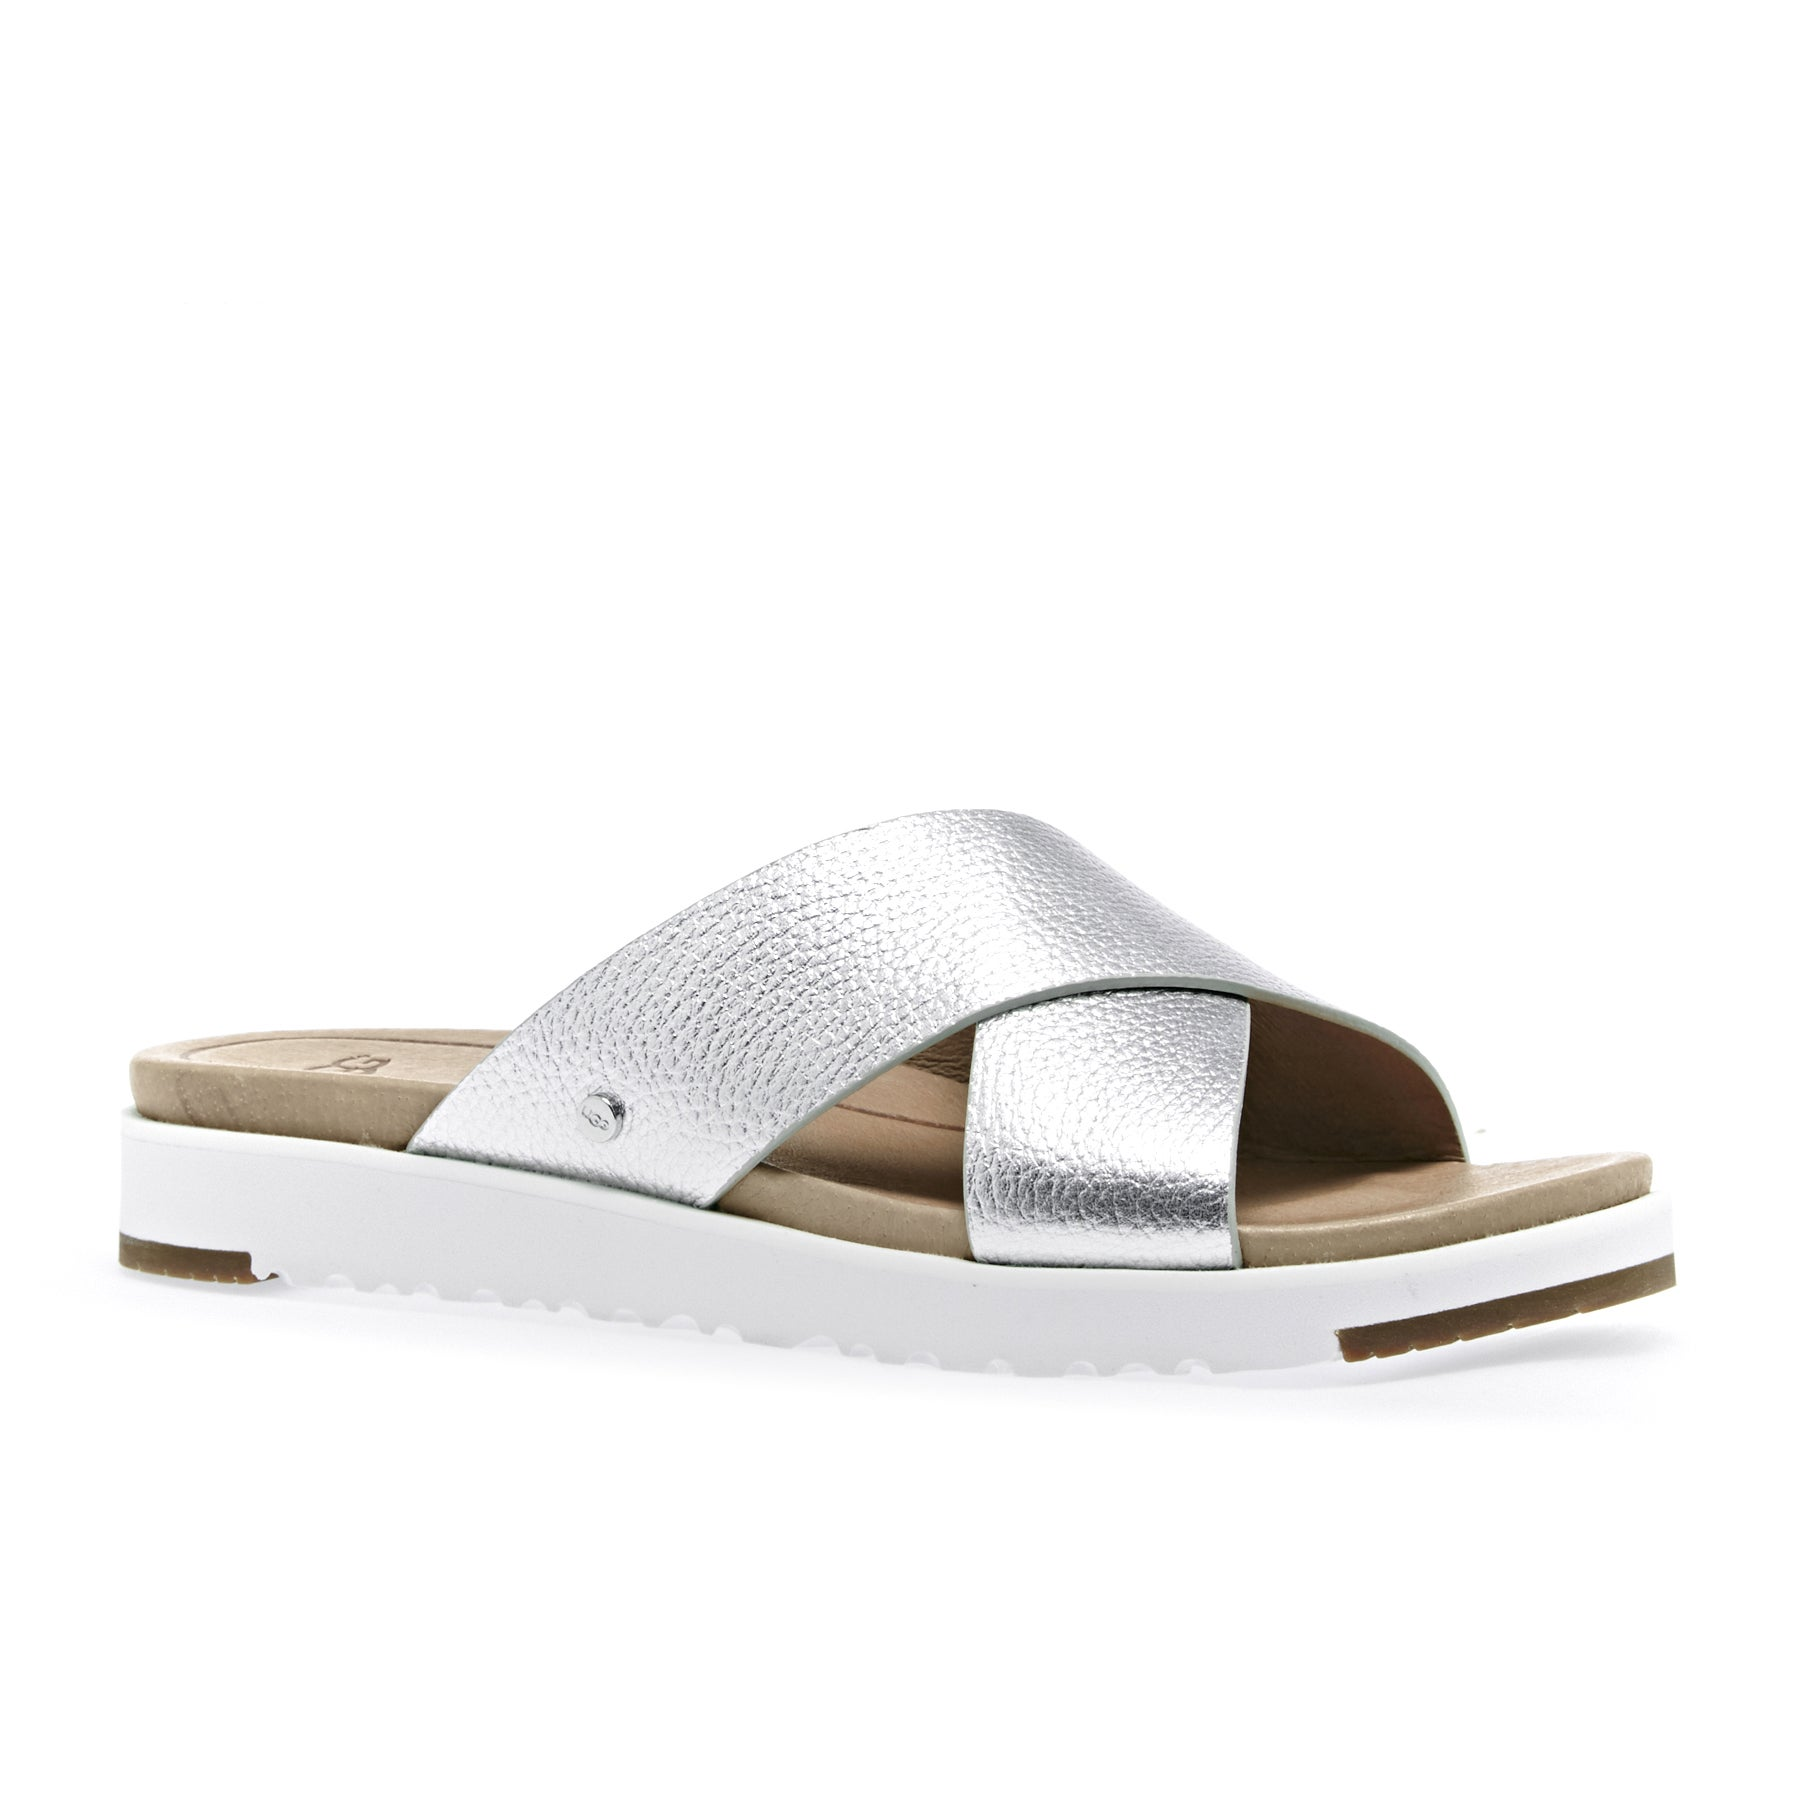 UGG Kari Metallic Slider Sandals - Silver